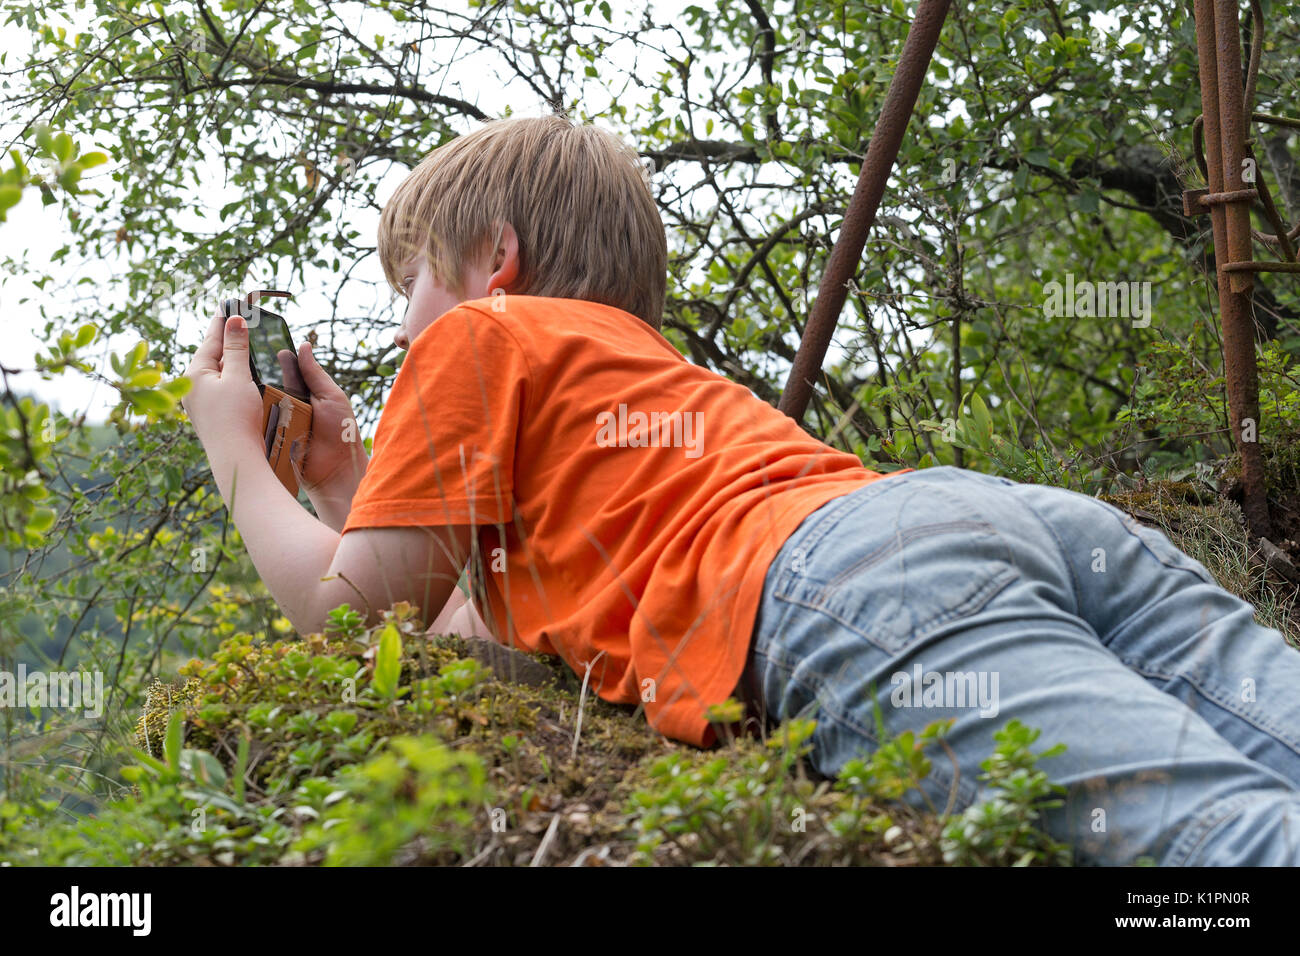 young boy lying on his belly taking pictures with his smartphone - Stock Image